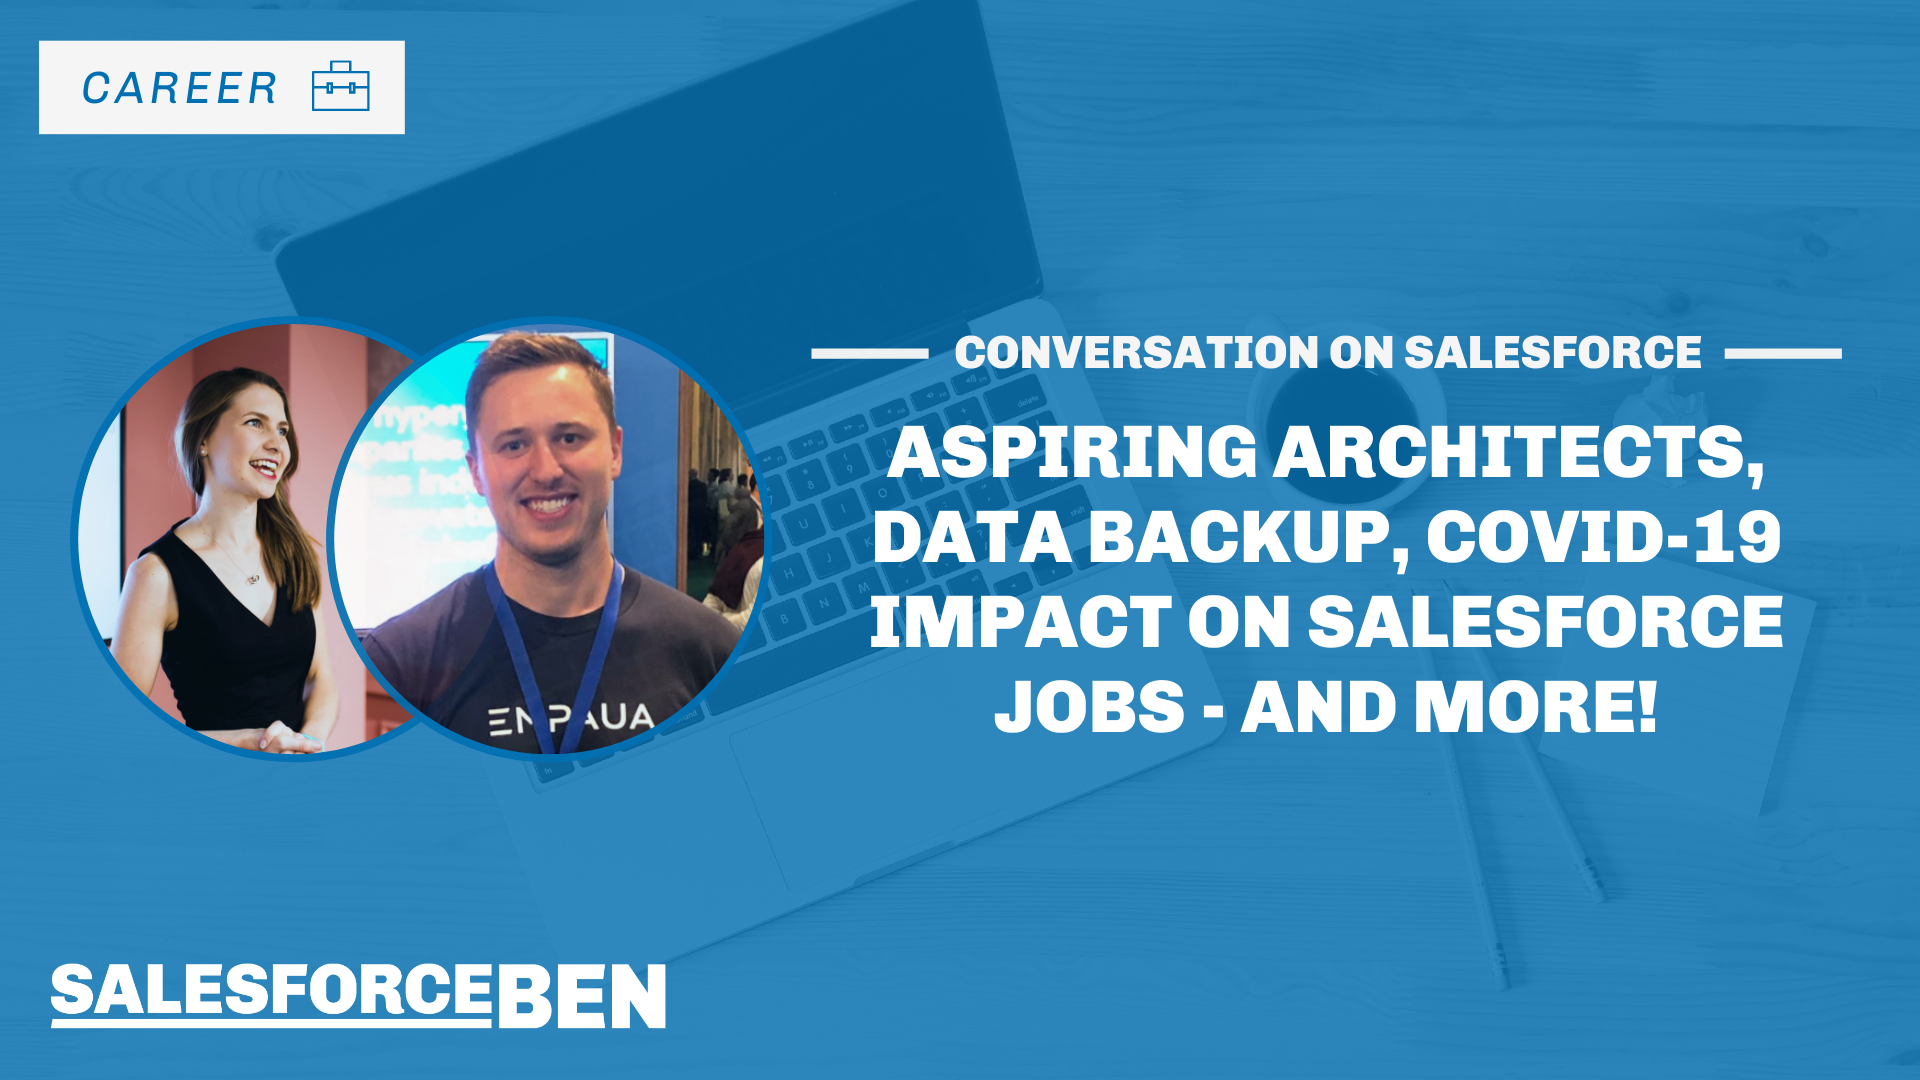 A Conversation on Salesforce: aspiring architects, data backup, COVID-19 impact on Salesforce jobs, and more!